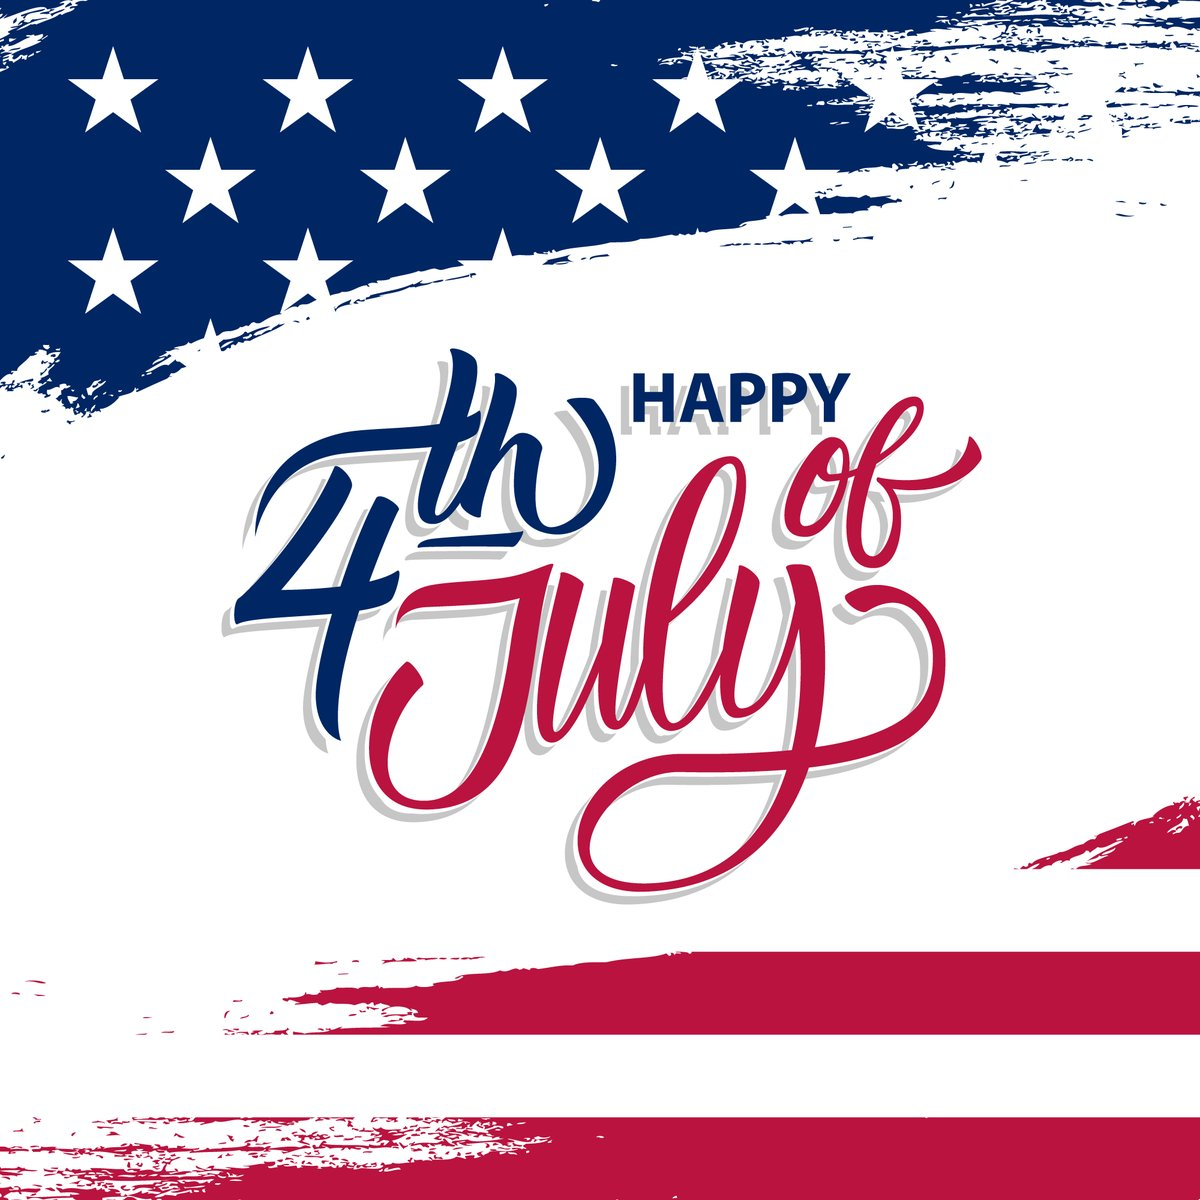 Happy 4th of July, everybody! #IndependenceDay